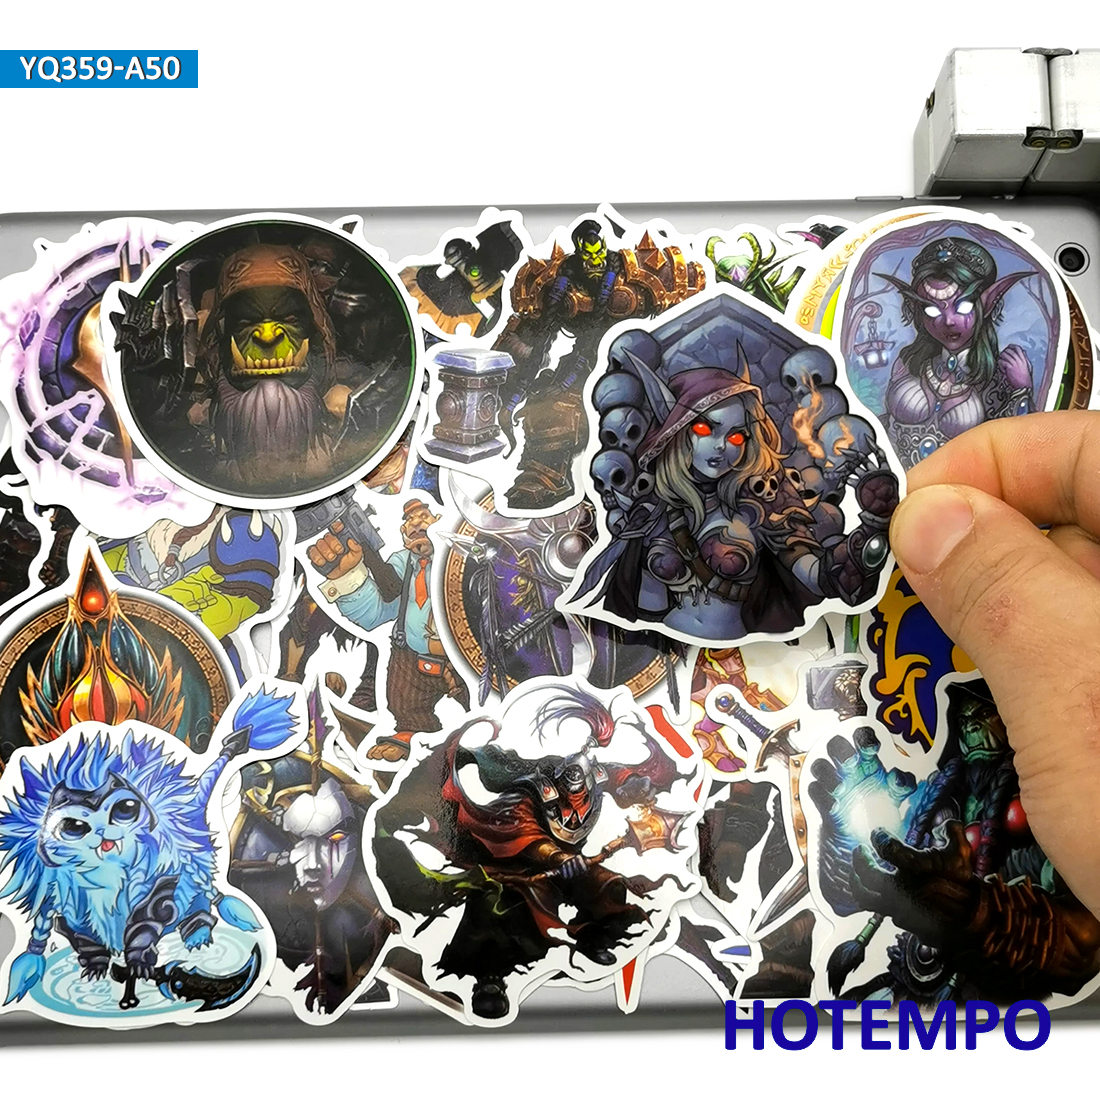 50pcs Anime Style Azeroth World Classic Game Stickers Toy For Mobile Phone Laptop Suitcase Skateboard Car Cartoon Decal Stickers